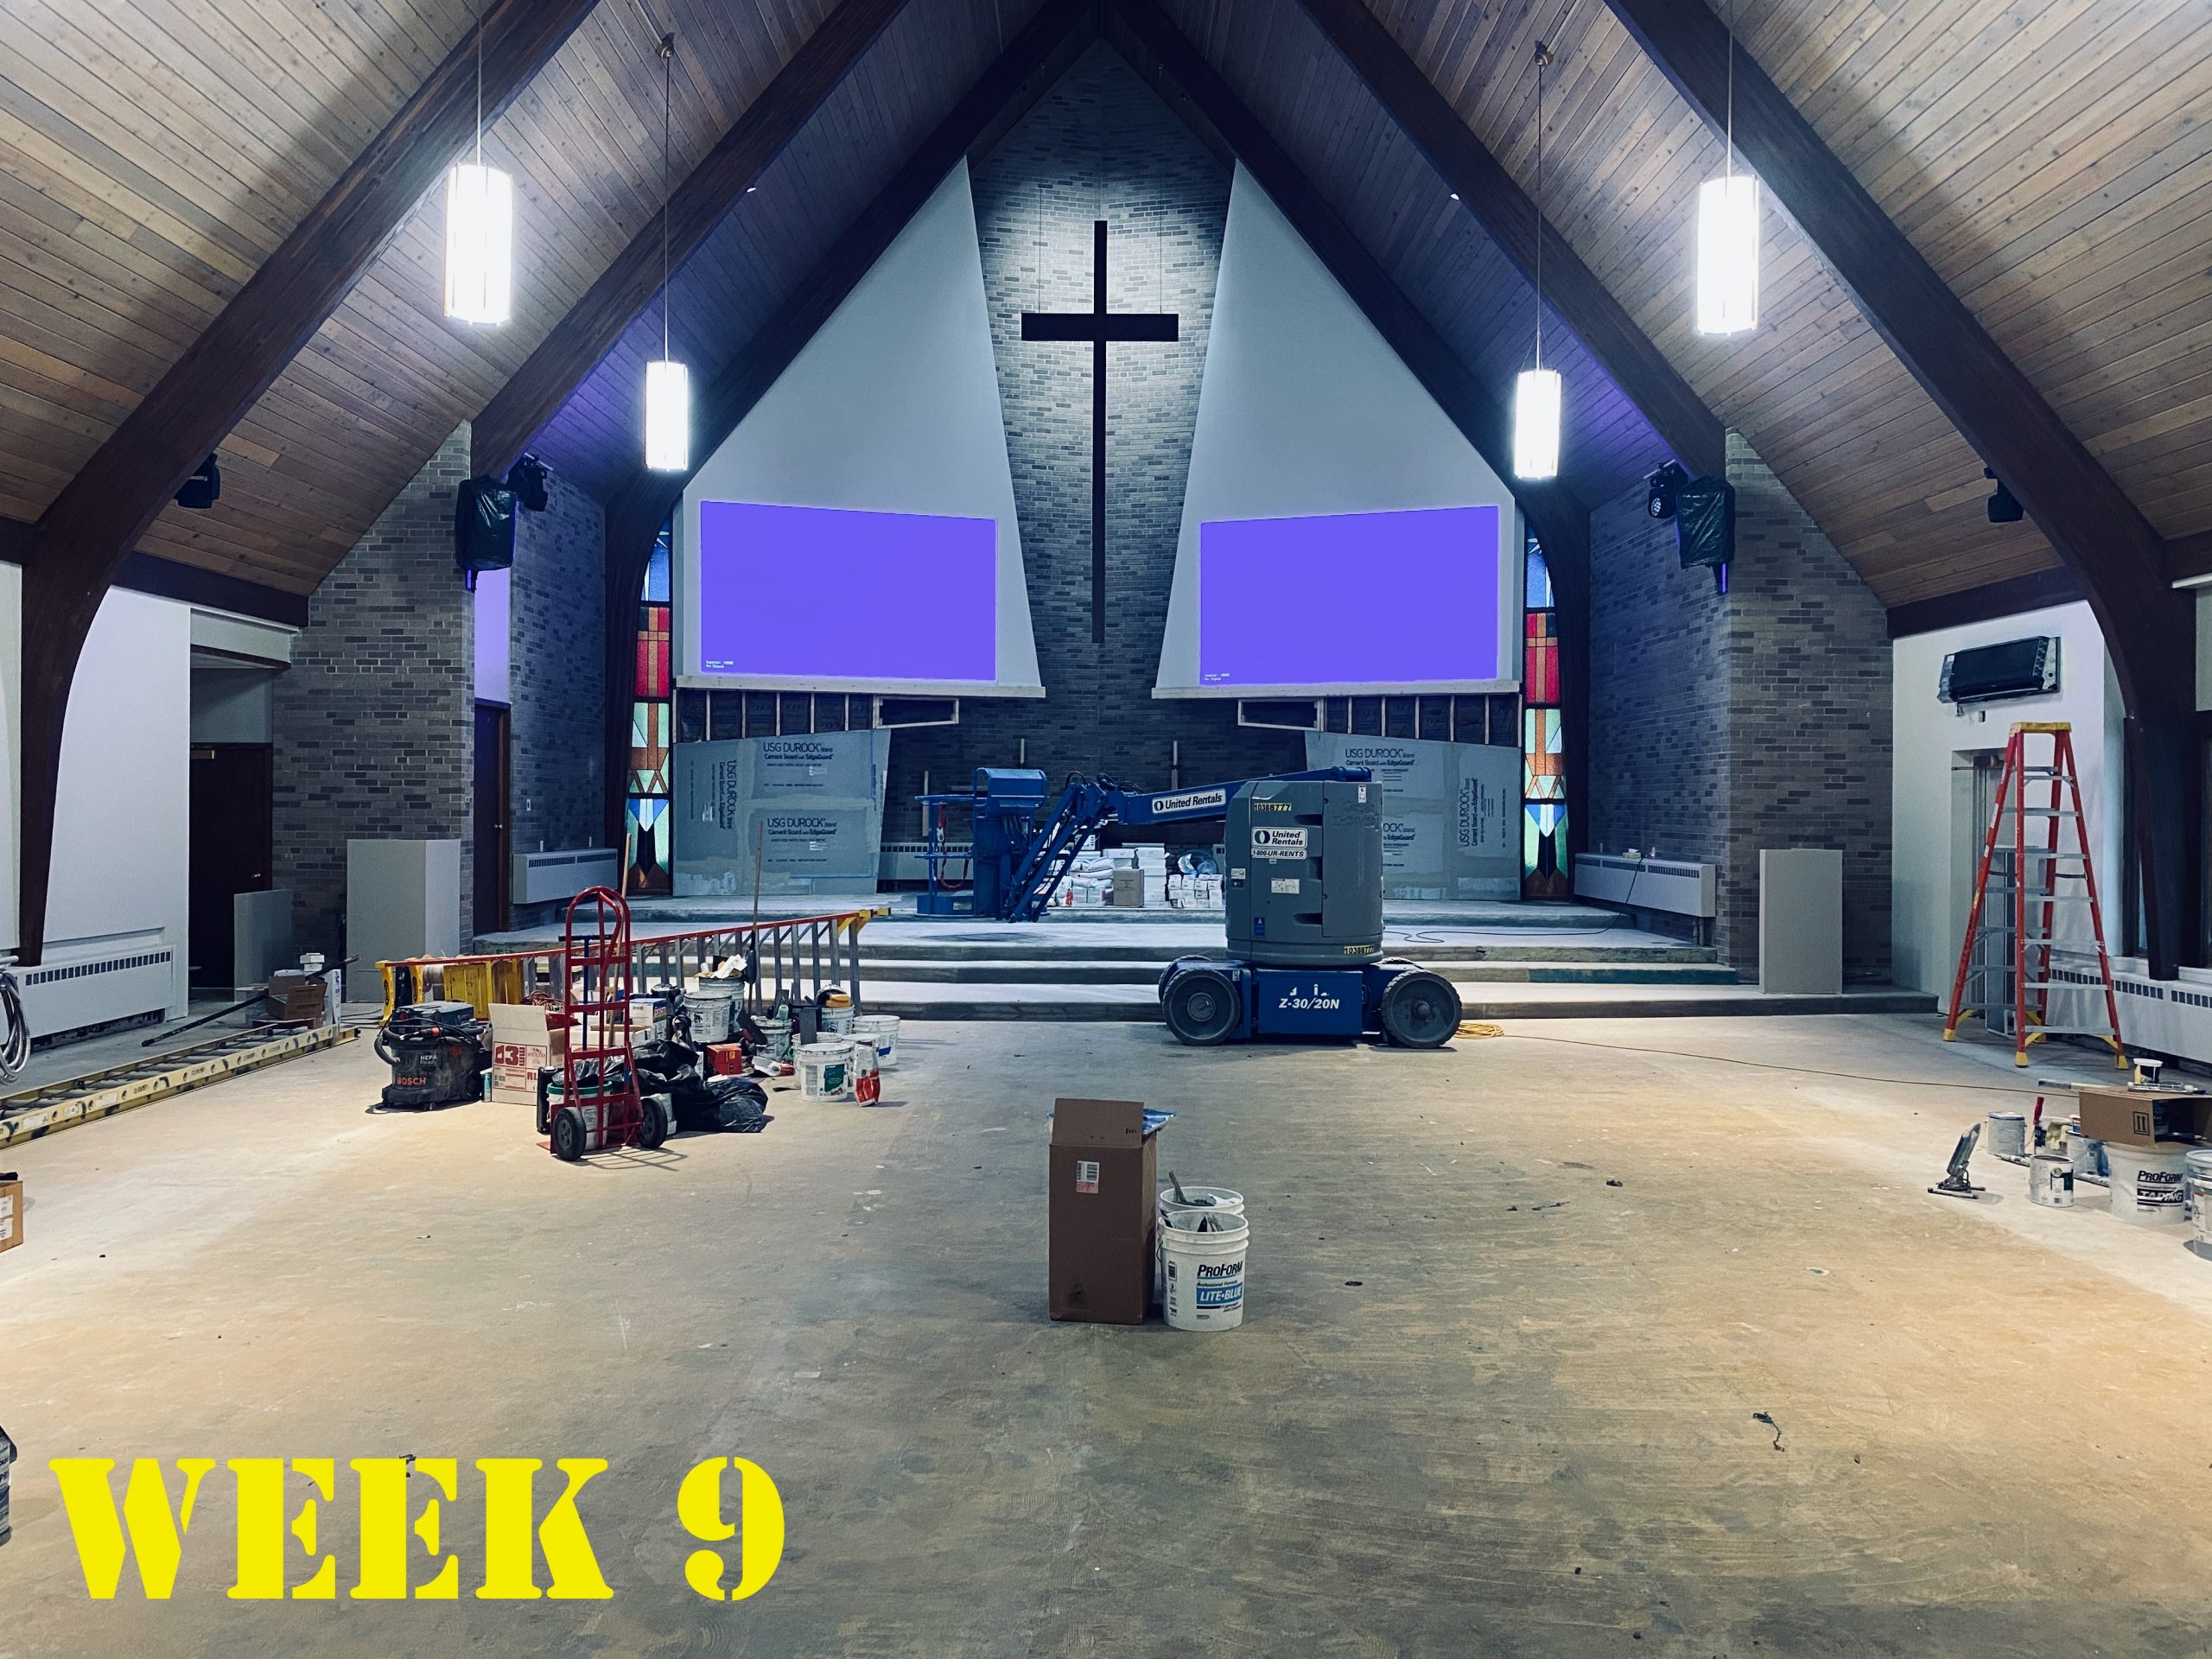 Week 9 Front